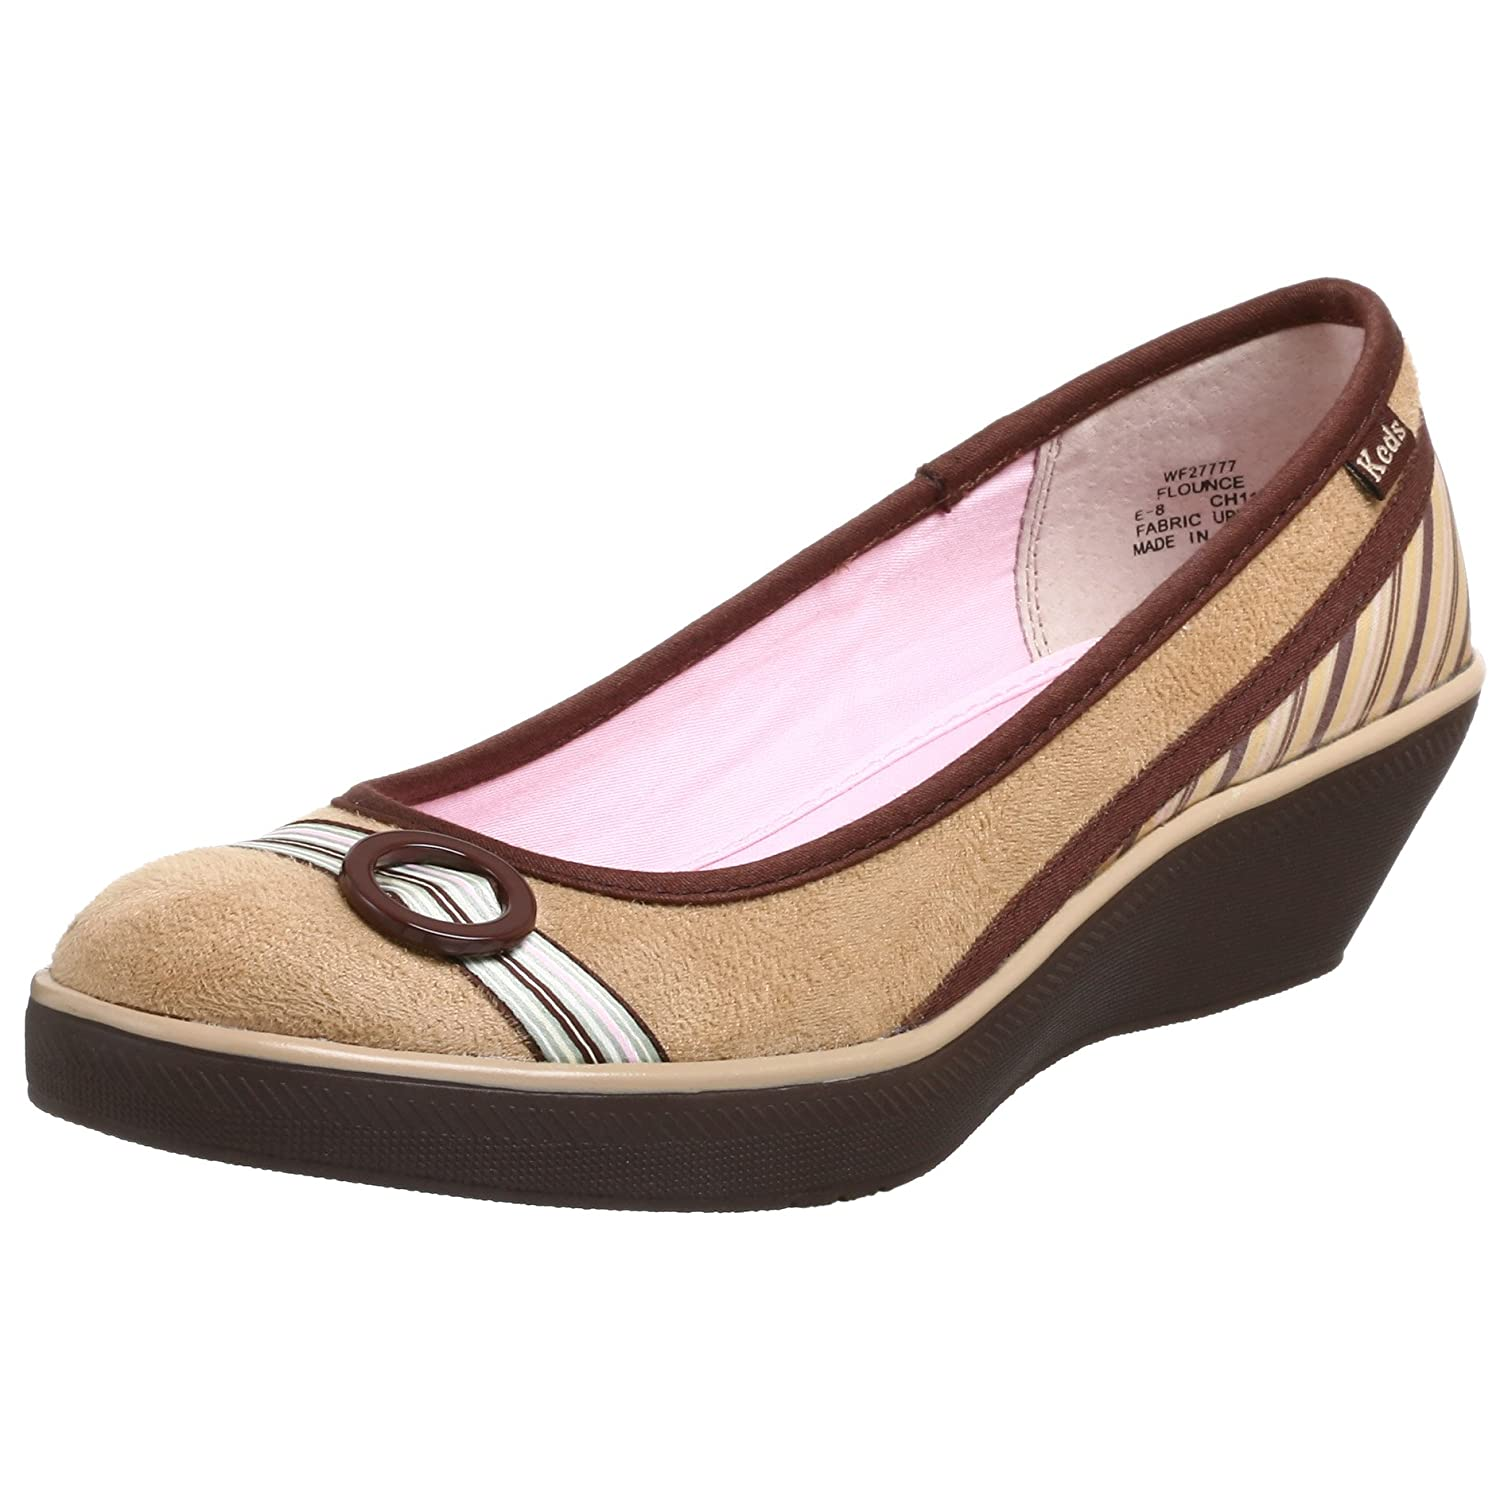 Keds Women's Flounce Wedge - Free Overnight Shipping & Return Shipping: Endless.com